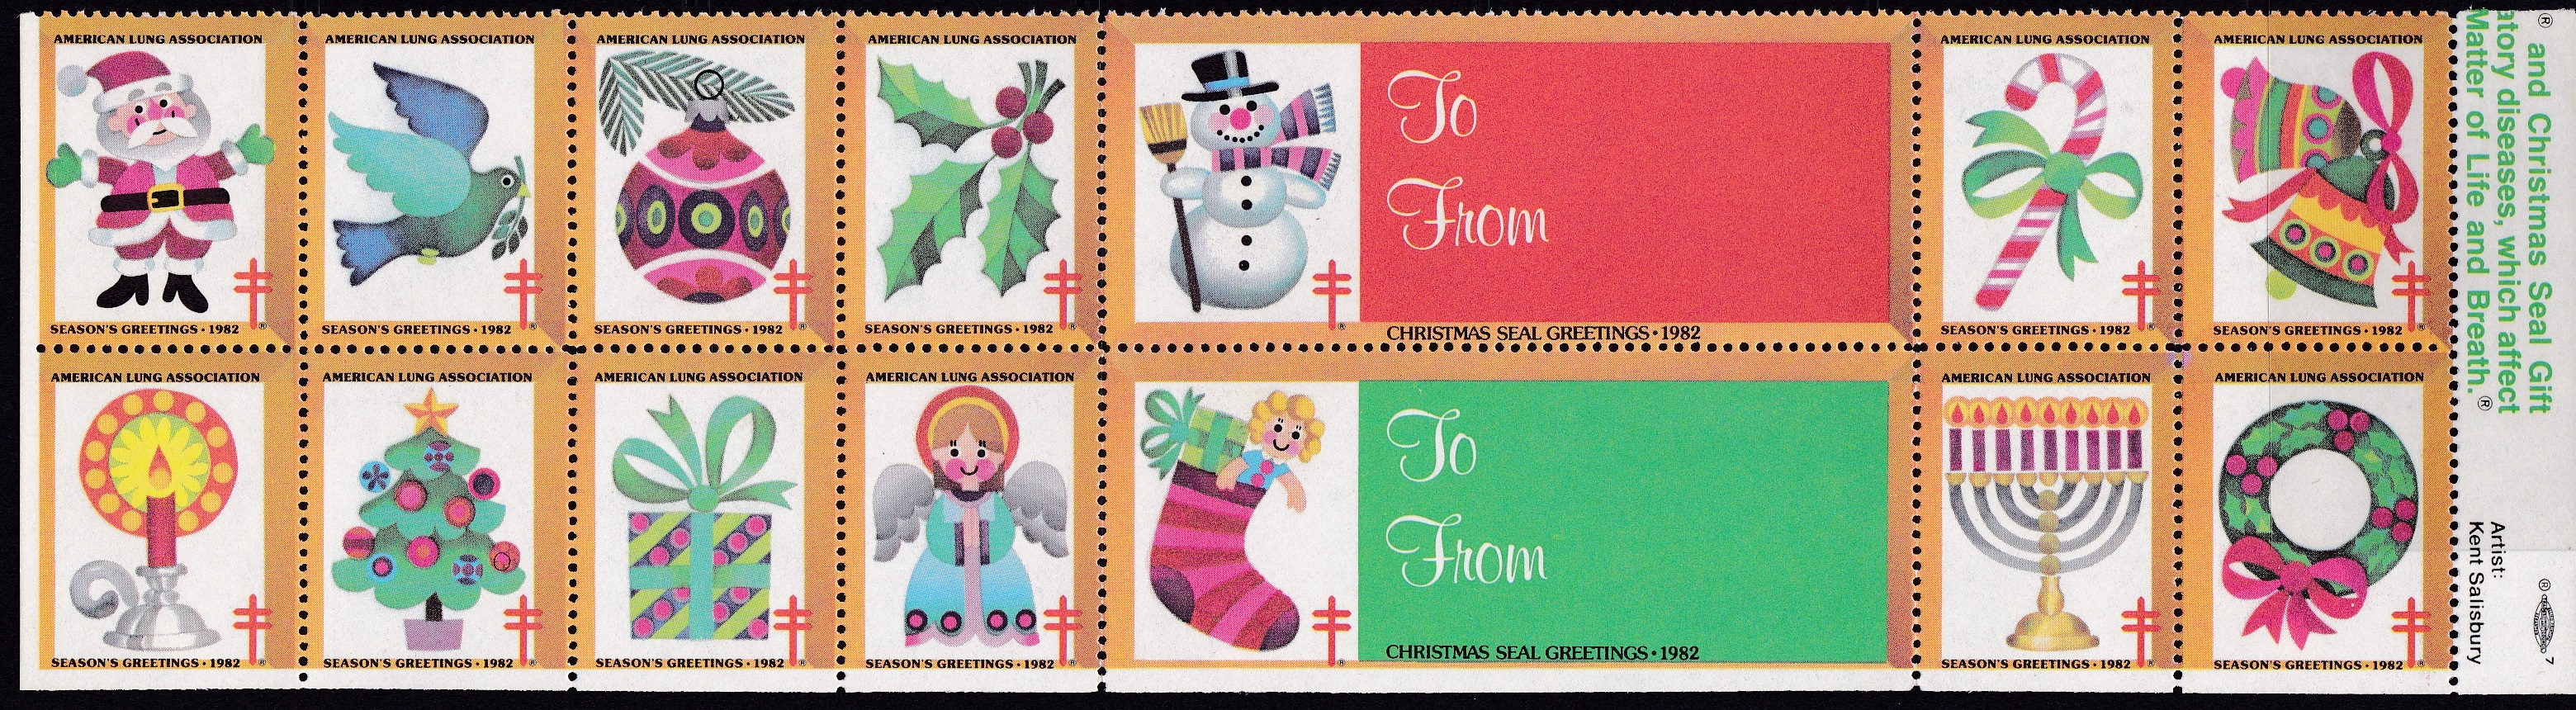 1982 Holiday Themes Christmas Seal Design Experiment